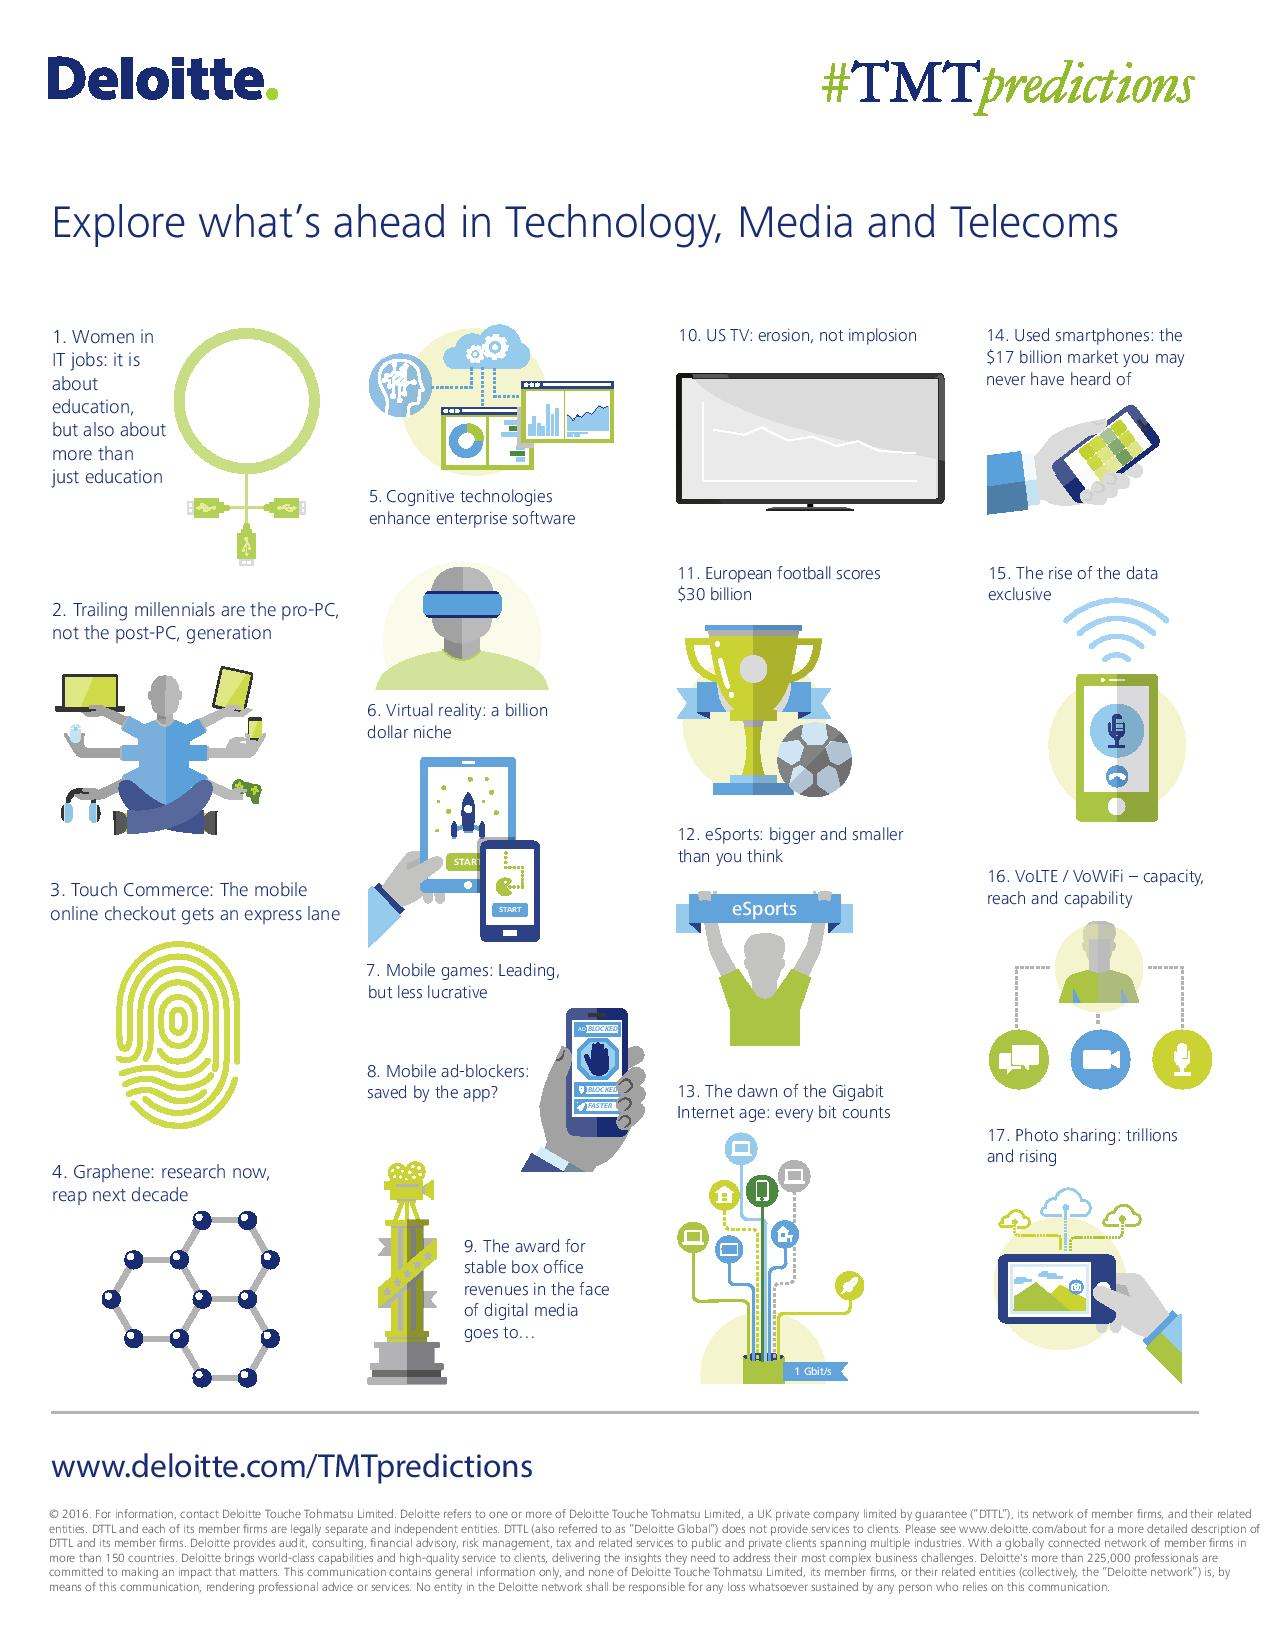 Deloitte-TMTpredictions-2016-infographic-page-001